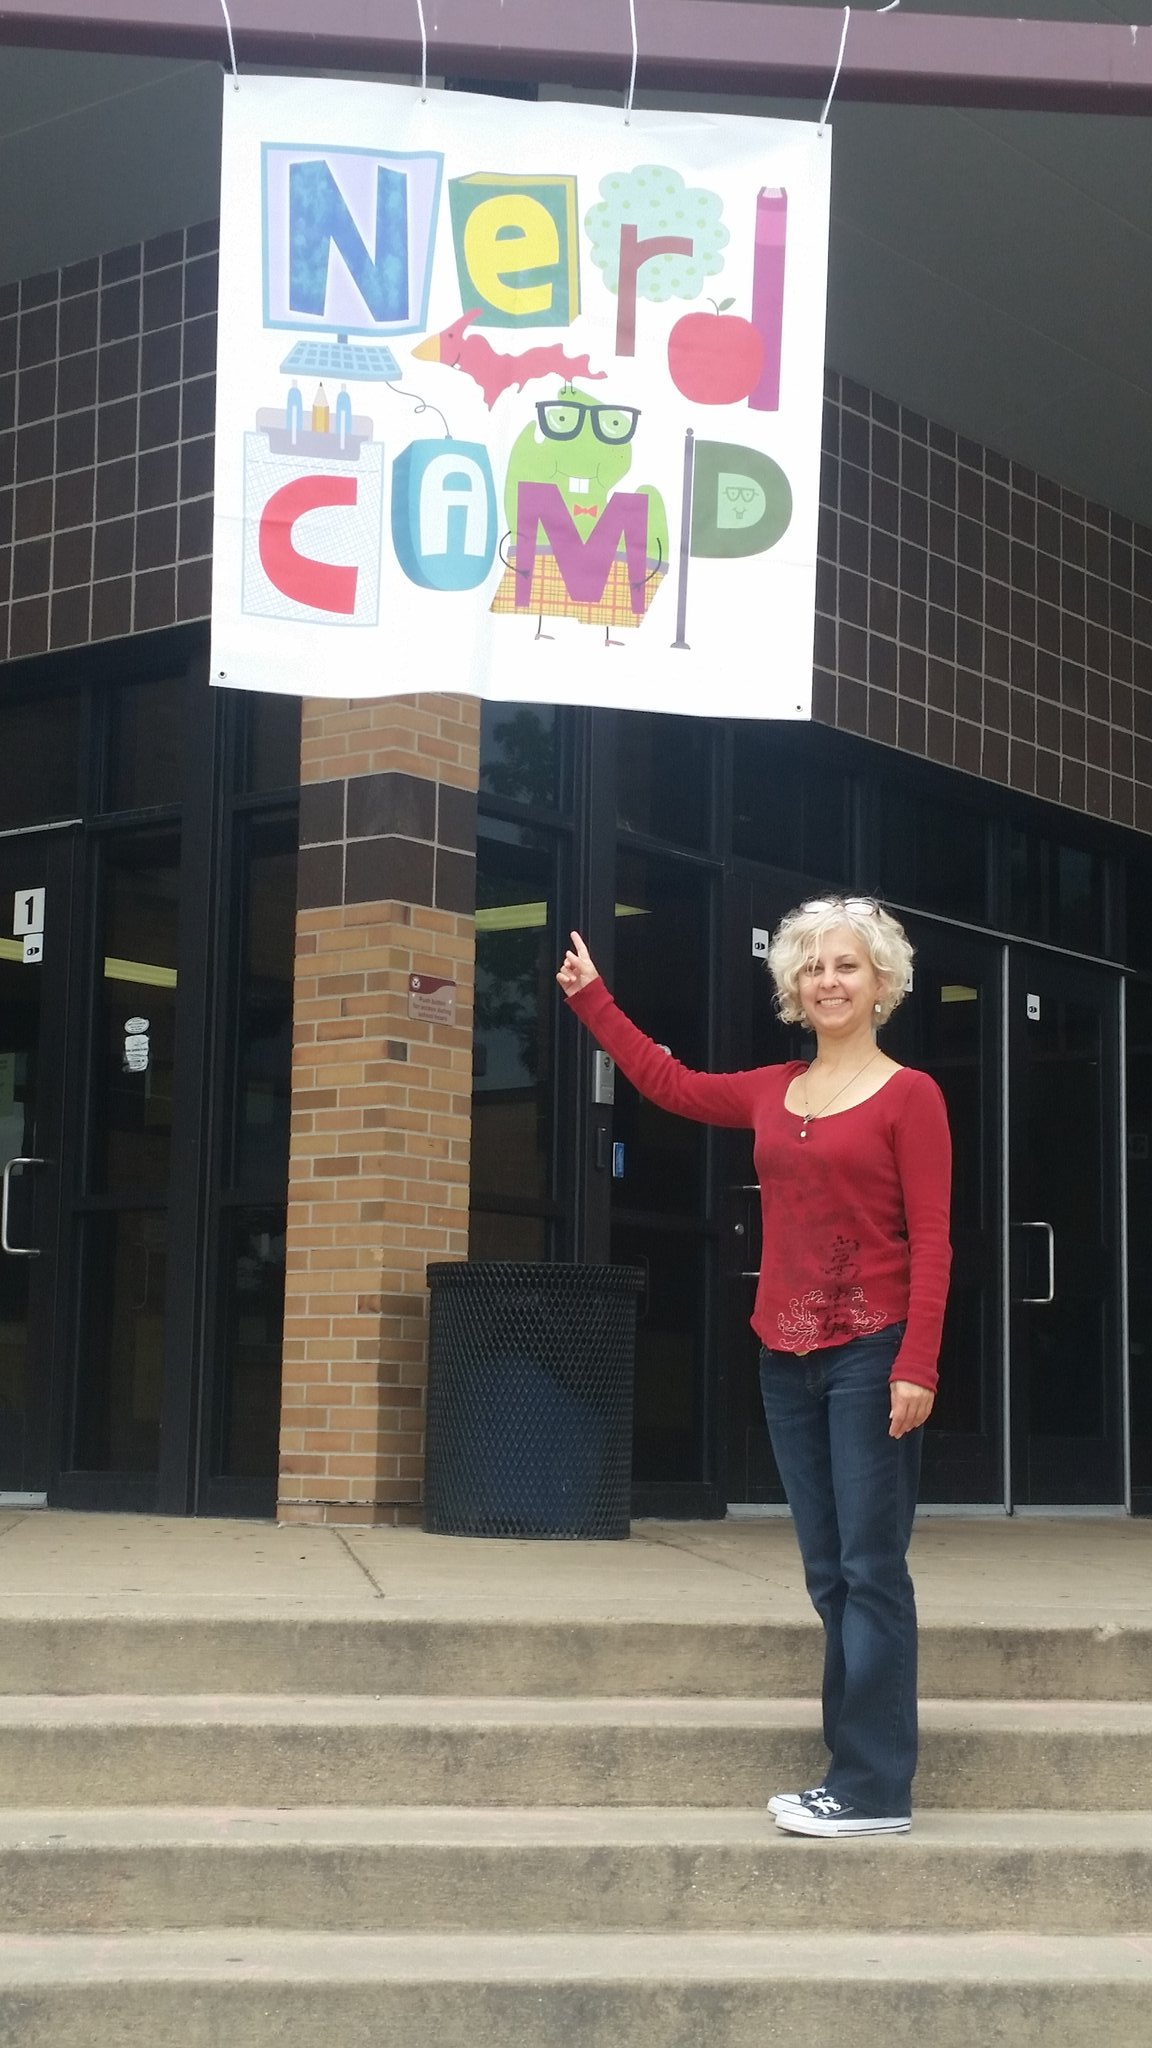 Surprise! #nErDcampMI https://t.co/ABmOPIUcbM